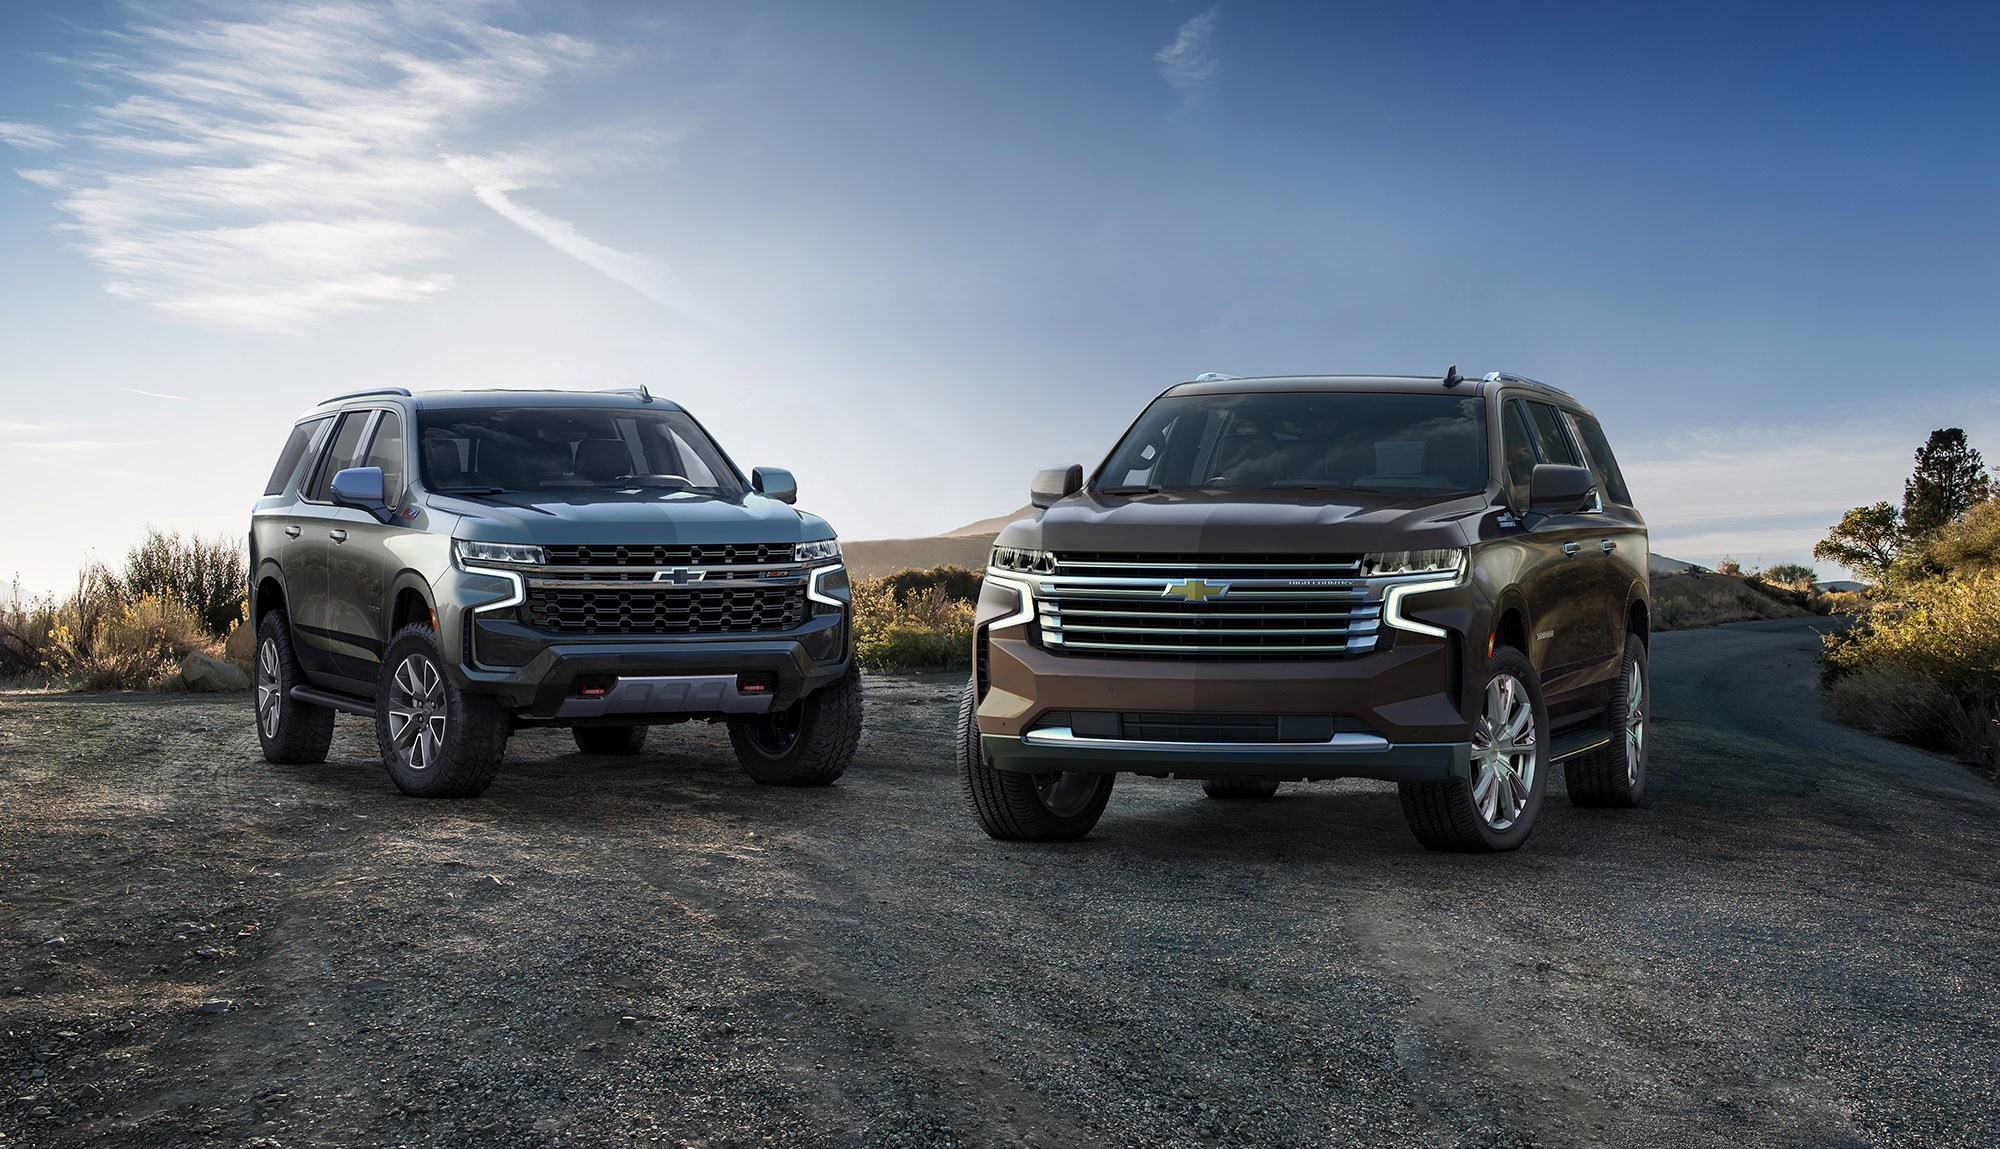 Chevrolet Ph To Launch 5 New Cars In 2021 Including C8 Corvette Tahoe Suburban